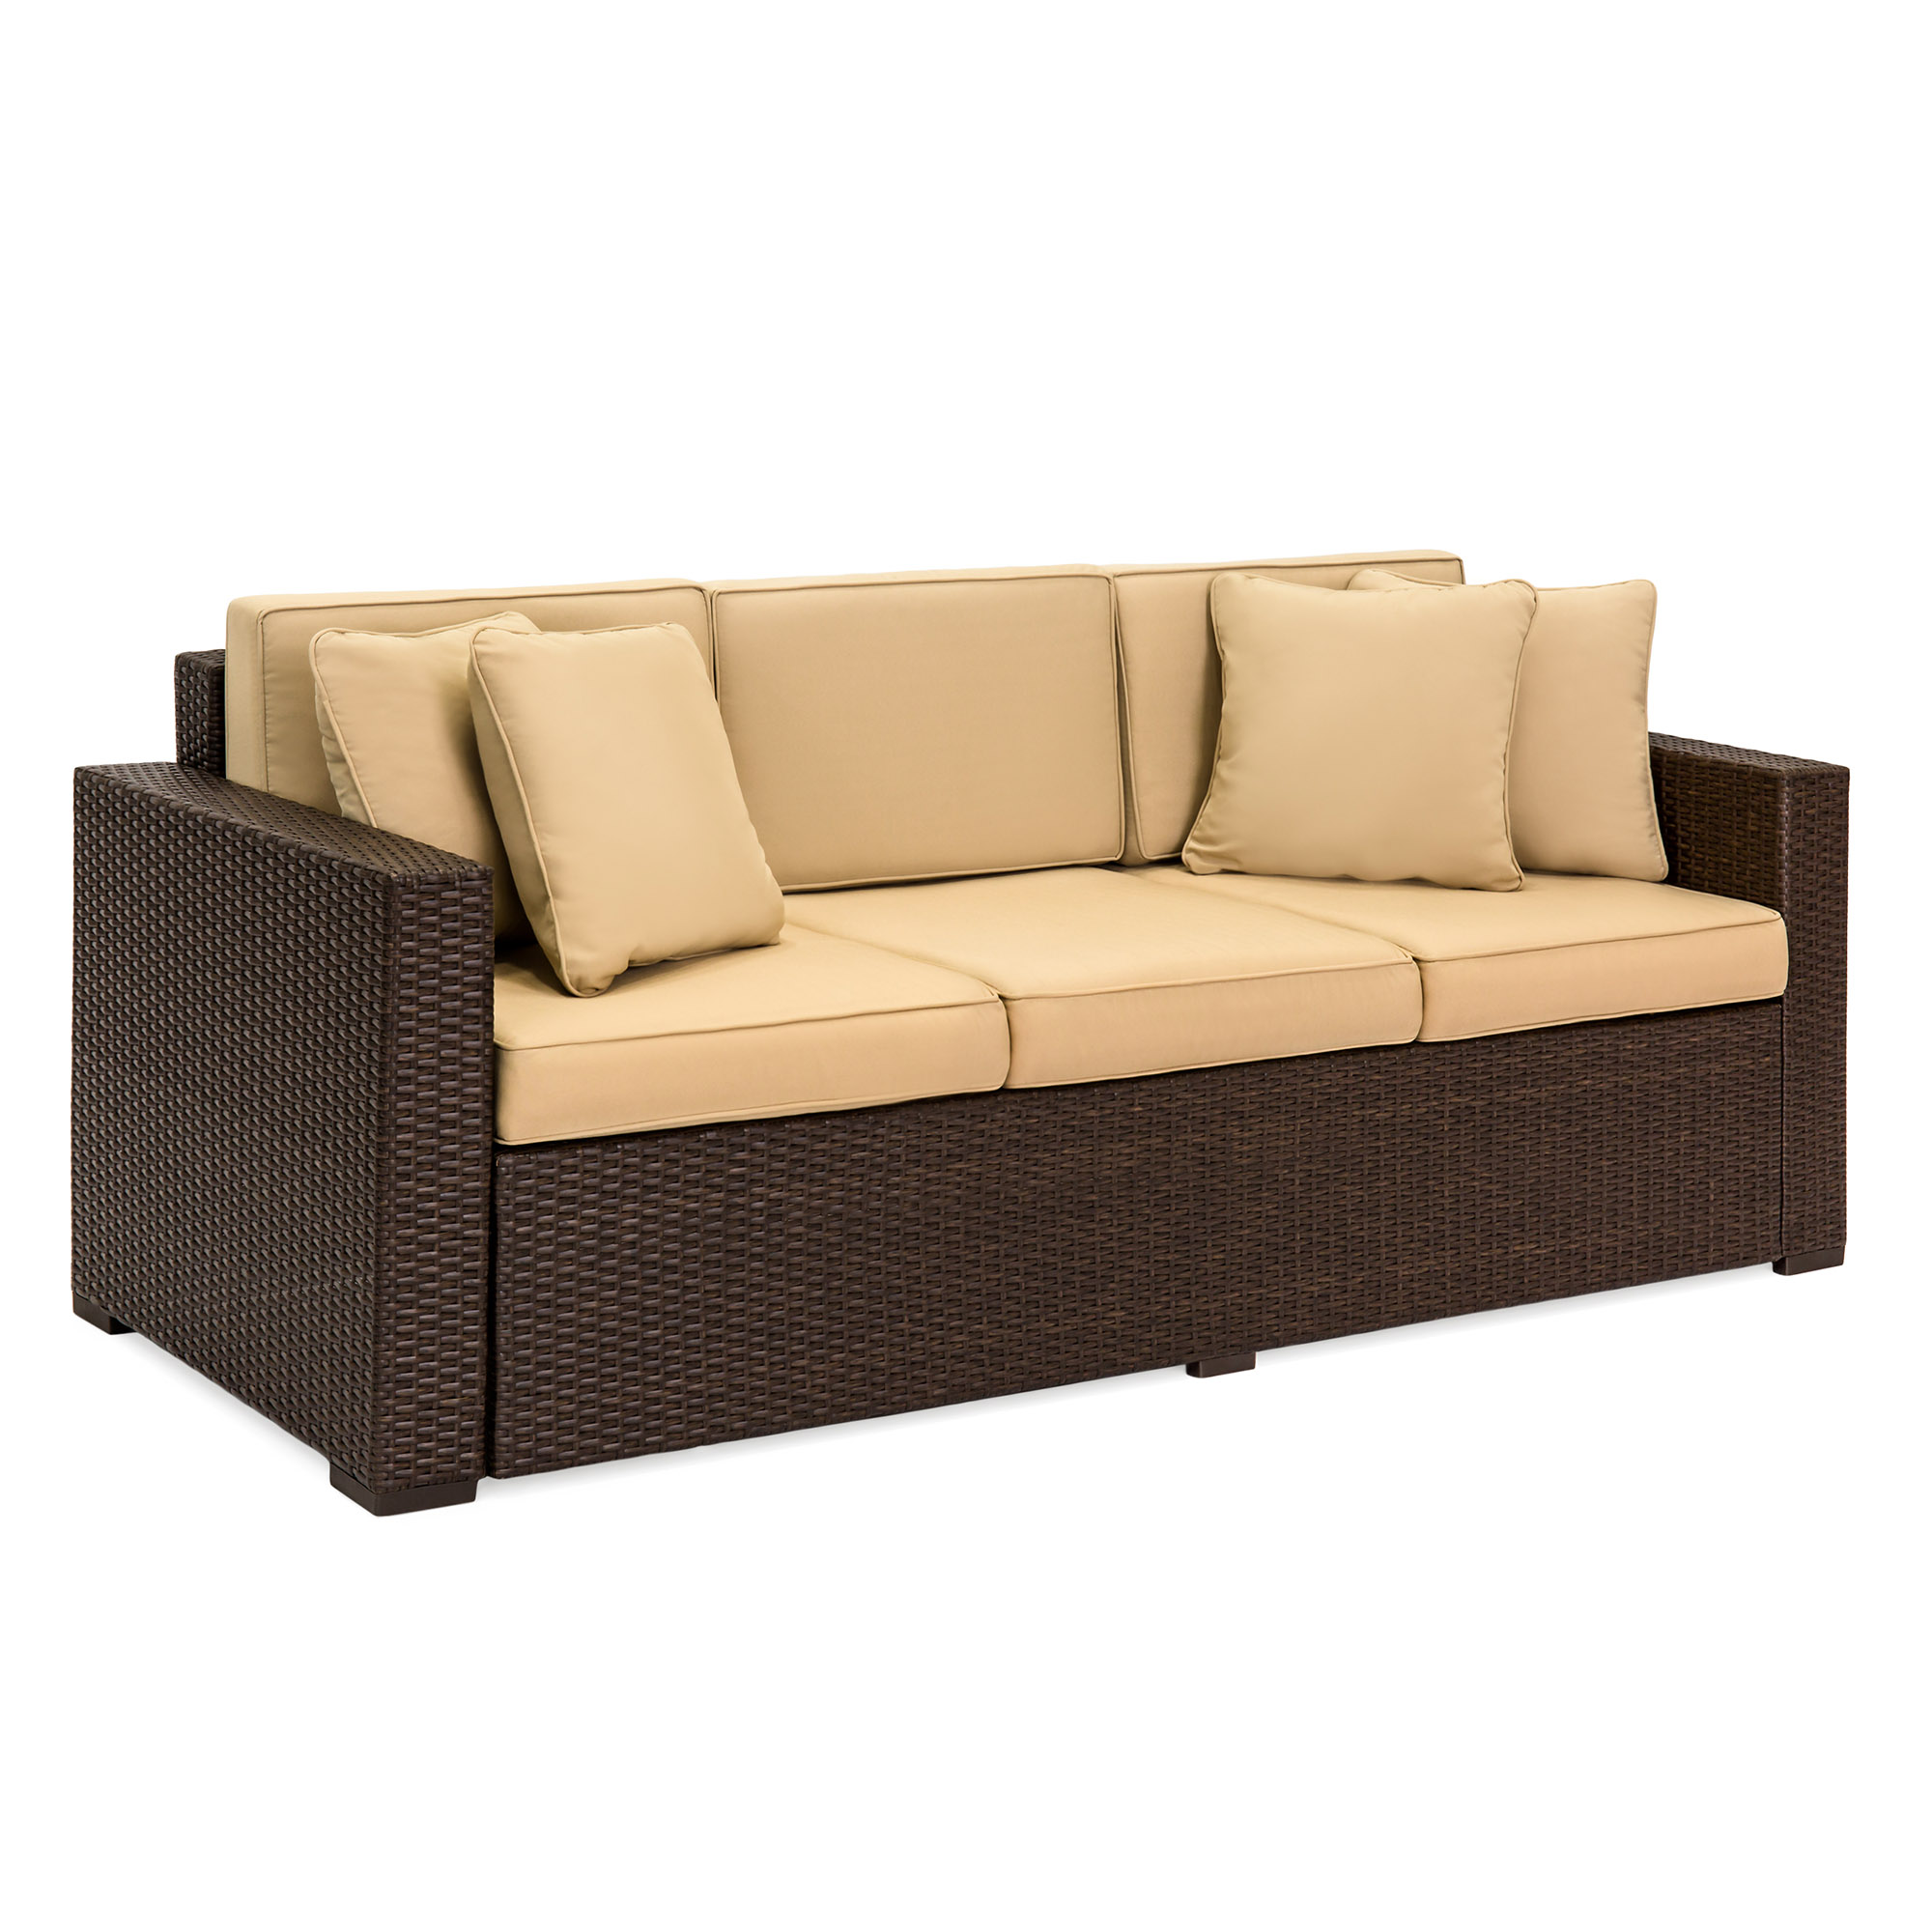 BCP 3 Seat Outdoor Wicker Patio Furniture Sofa Couch W/ Steel Frame